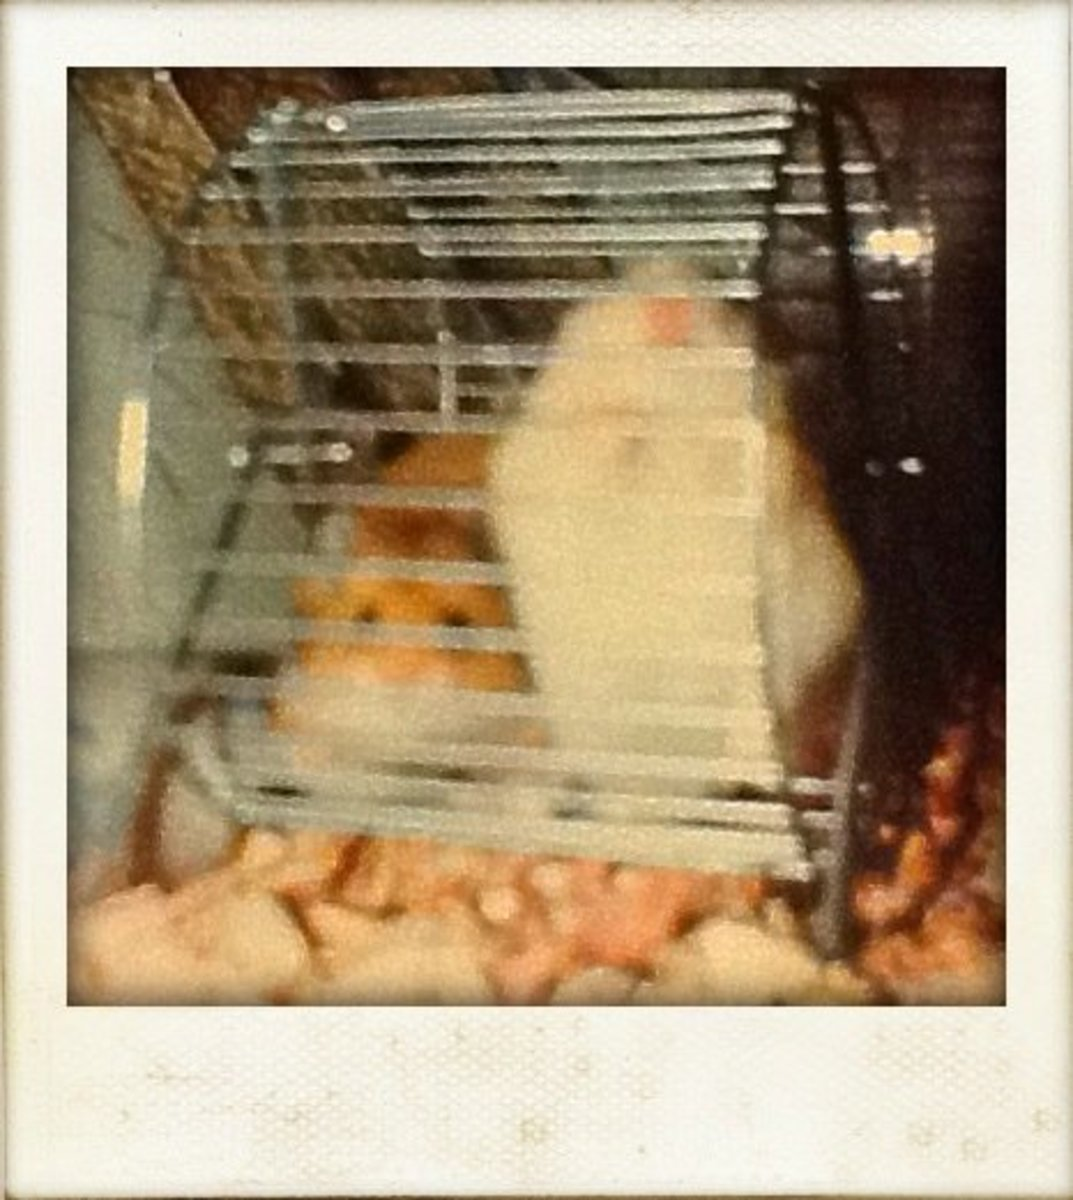 My hamsters Honey and Bunny, circa 1986